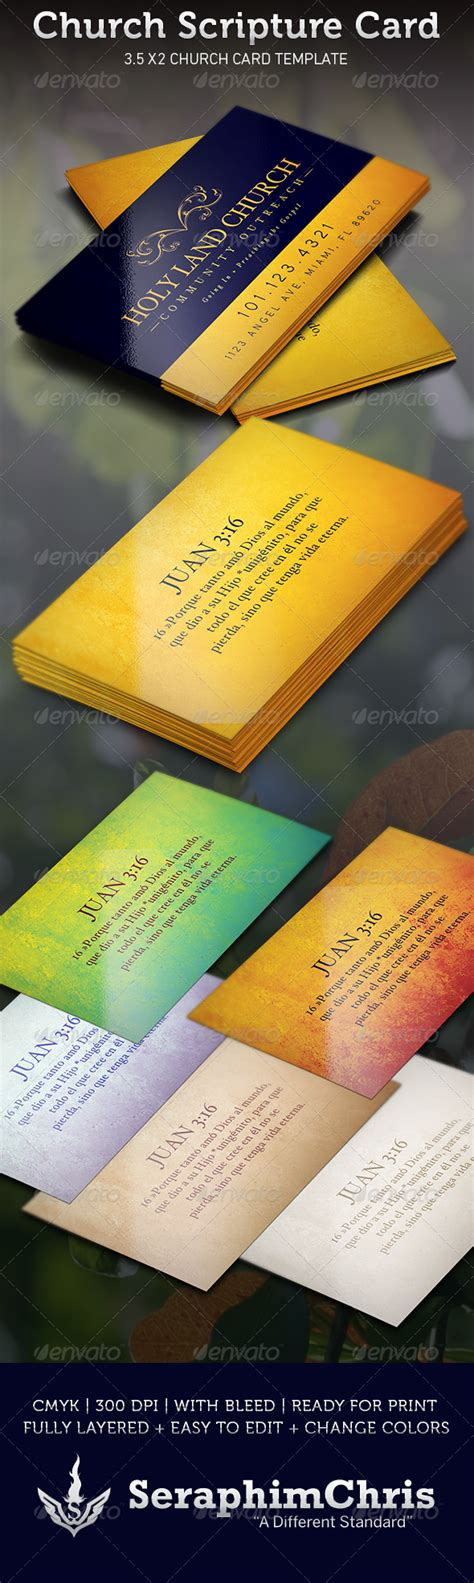 verse cards template free bible scripture clip 399 pixel 187 maydesk